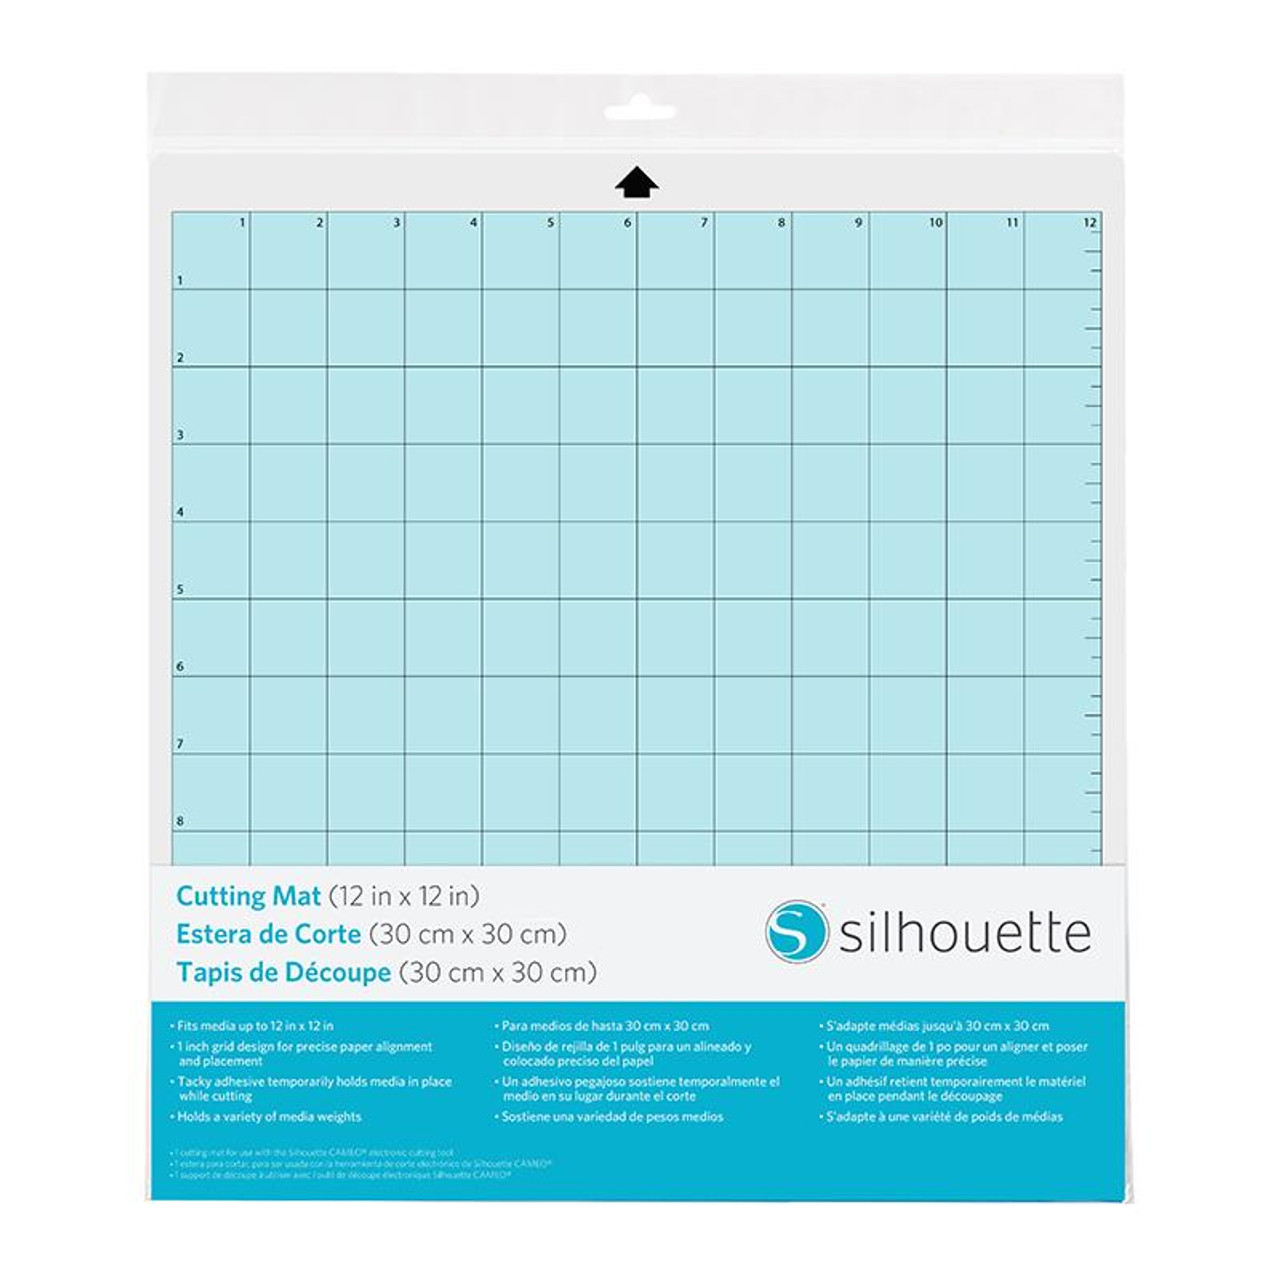 Silhouette PixScan Cutting Mat for use with Portrait